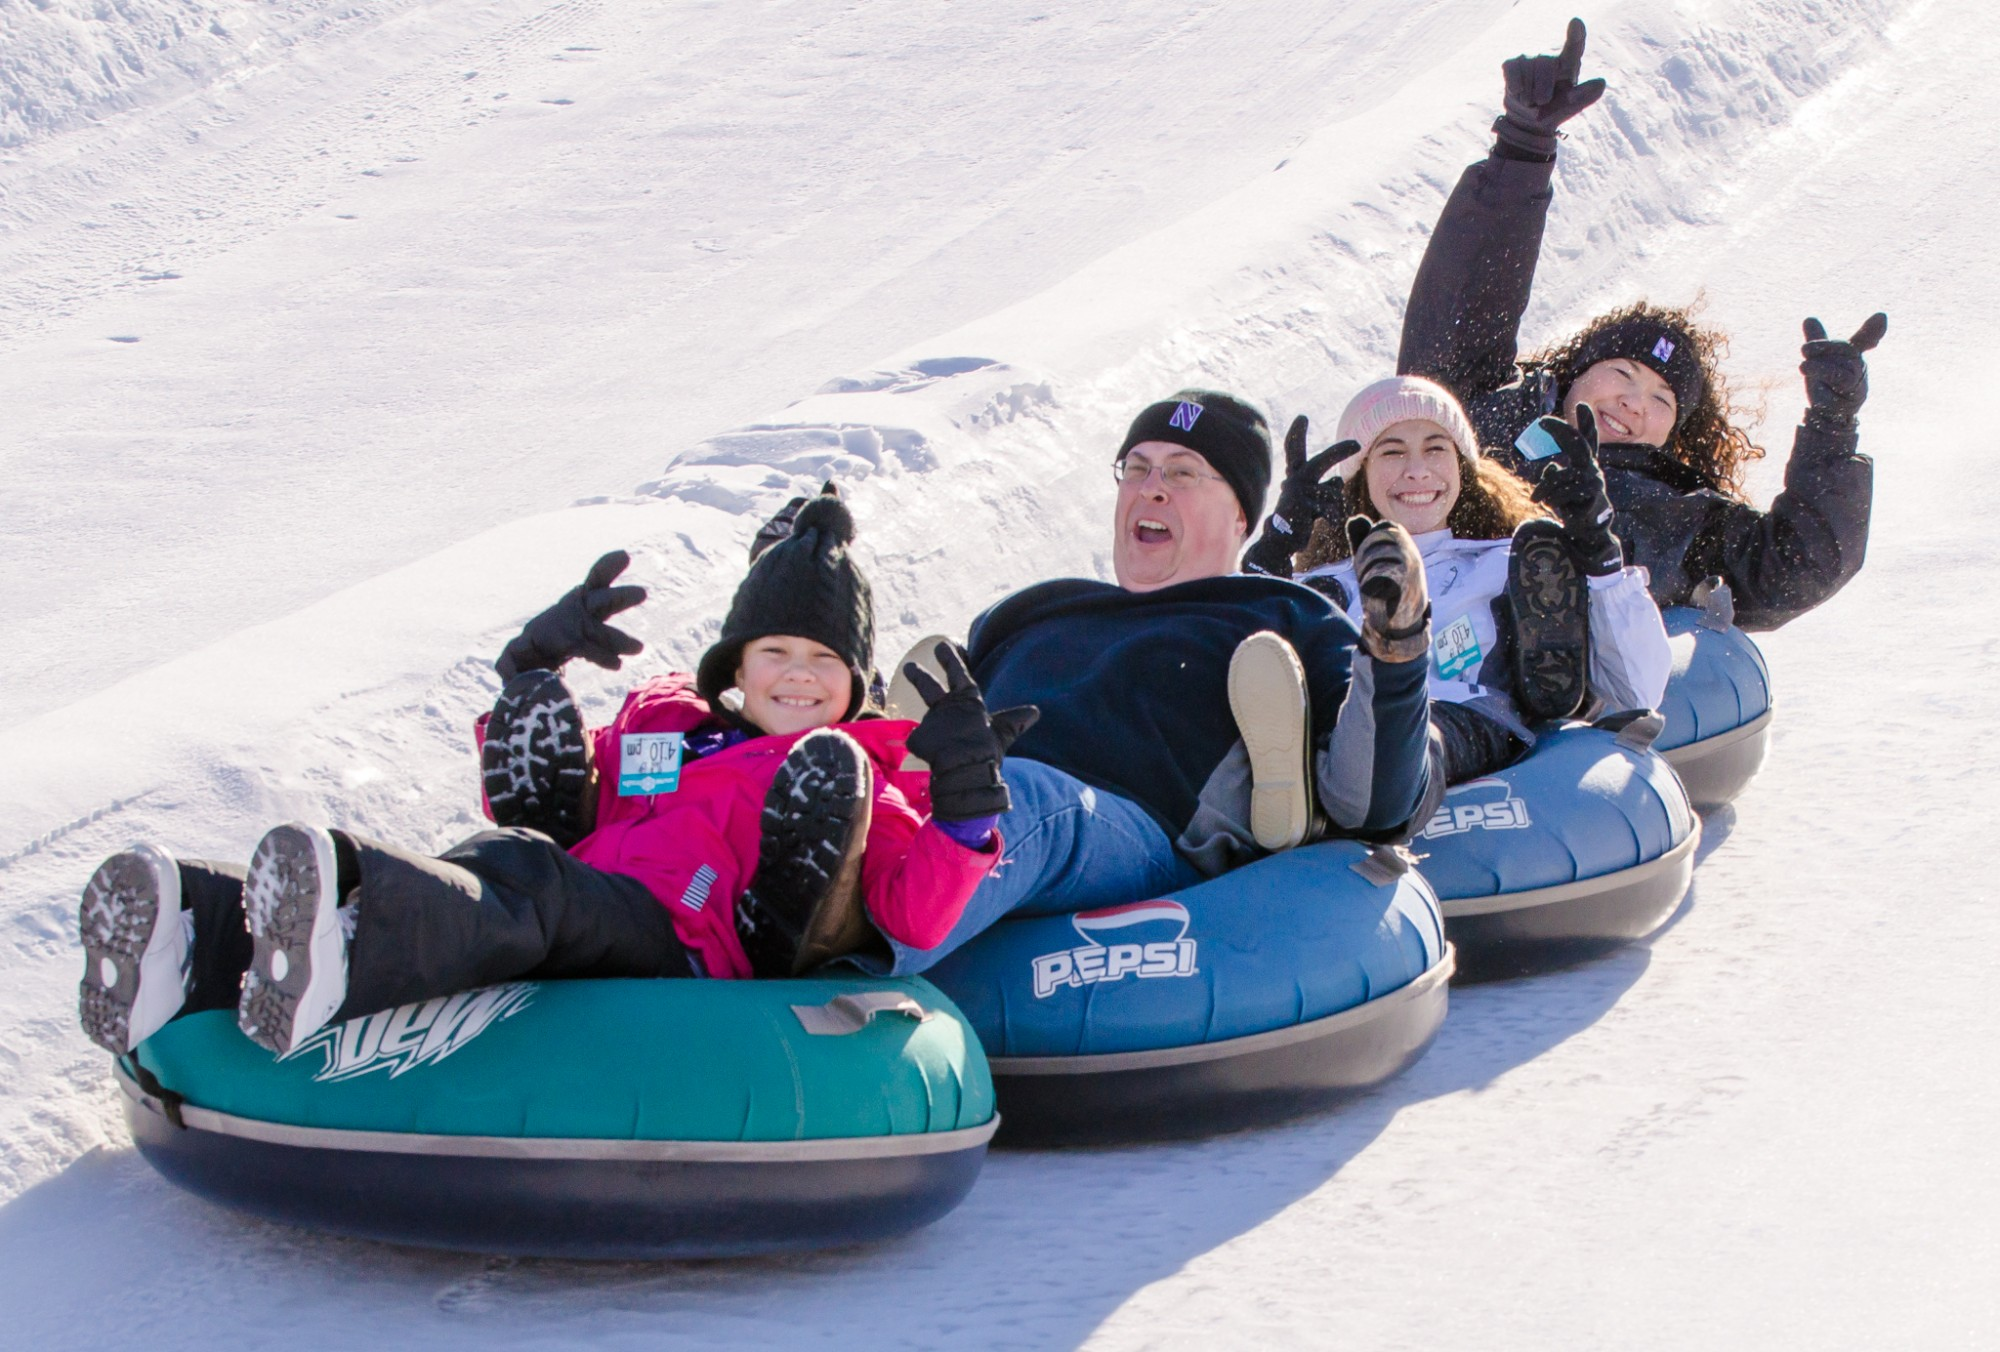 Family Day at Snow Trails Vertical Descent Tubing Park